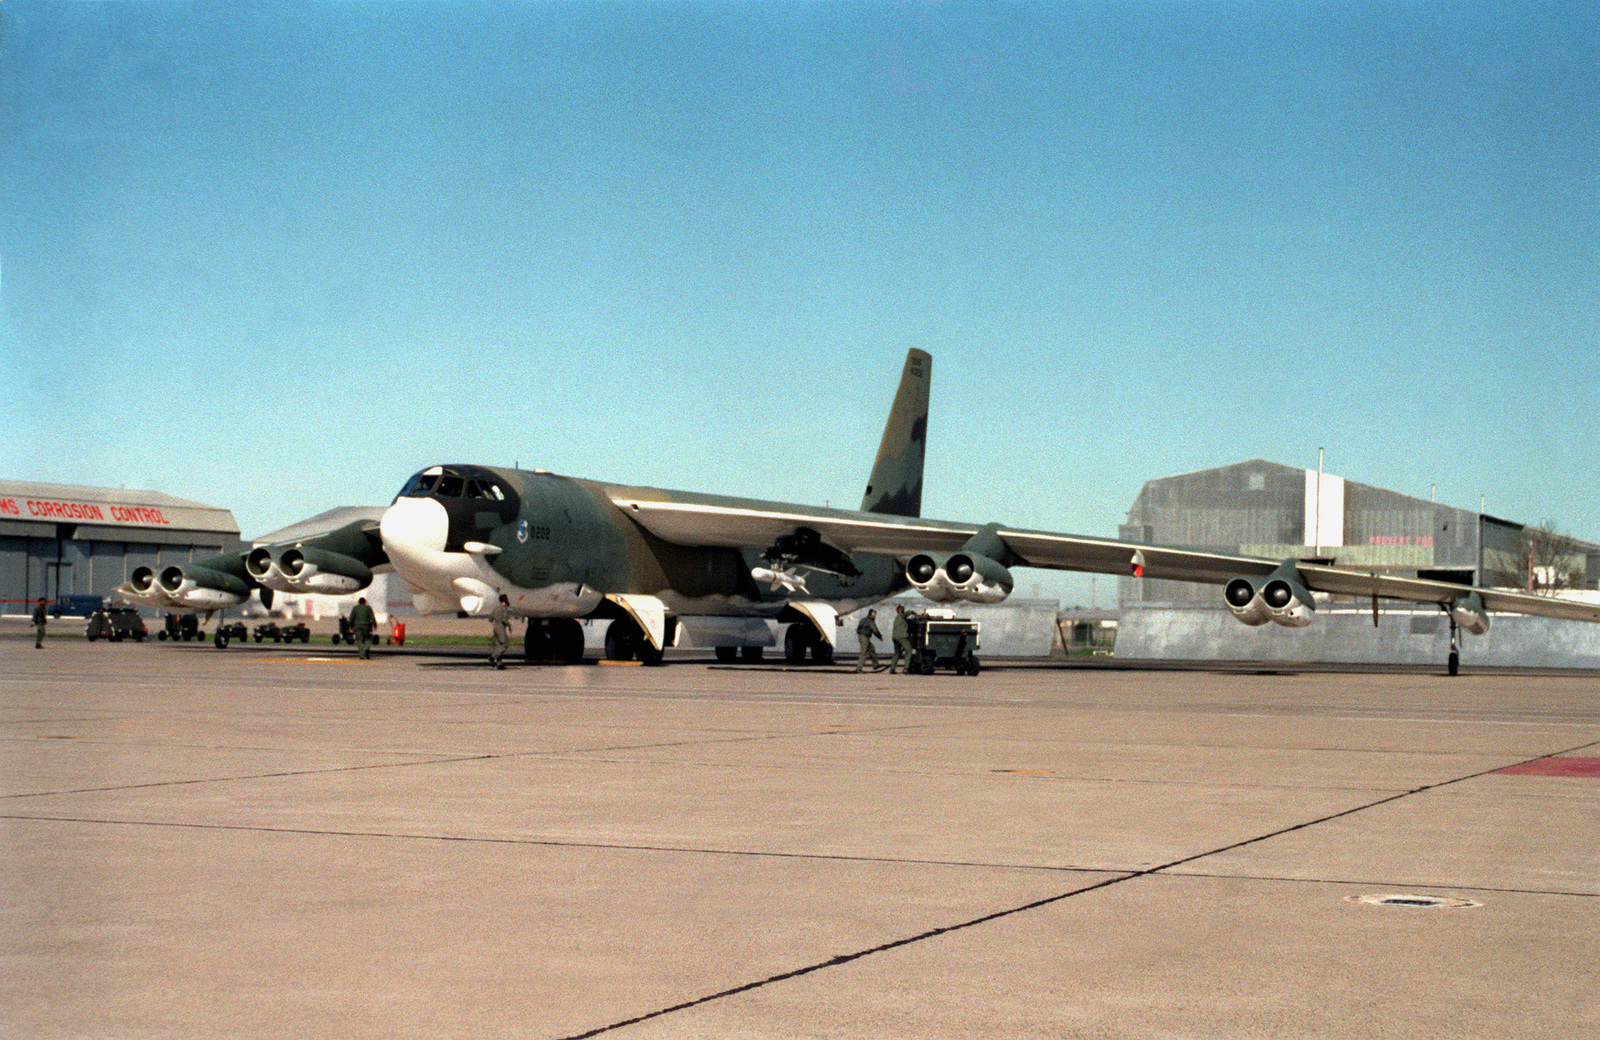 A right front view of a B-52 Stratofortress aircraft with a Harpoon (AGM-84A) missile on its wing, as it is prepared for takeoff. This is the first launch of a Harpoon from a B-52